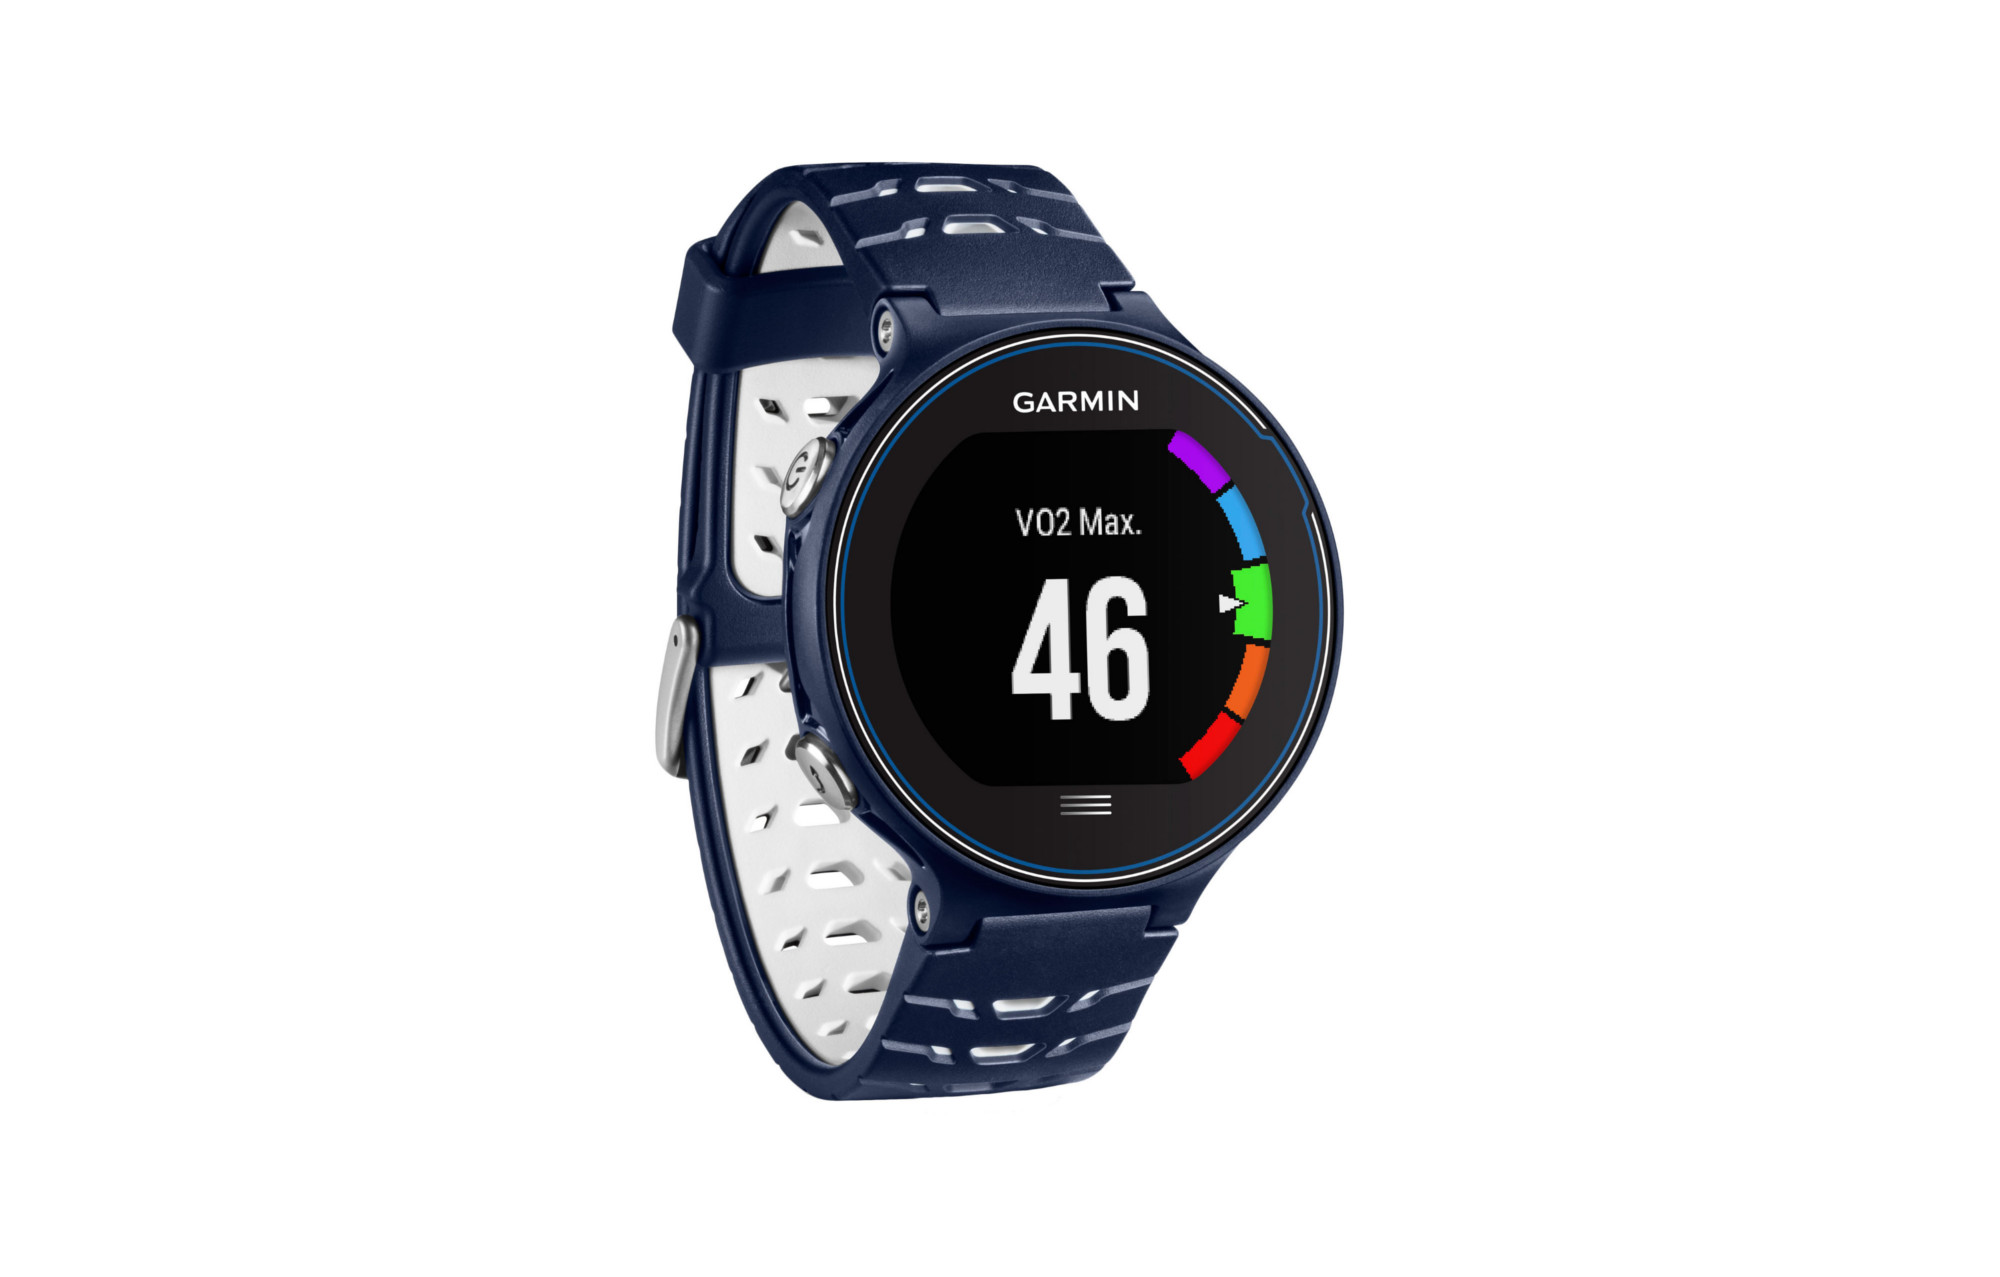 montre gps garmin forerunner 630 hrm run blanc bleu. Black Bedroom Furniture Sets. Home Design Ideas